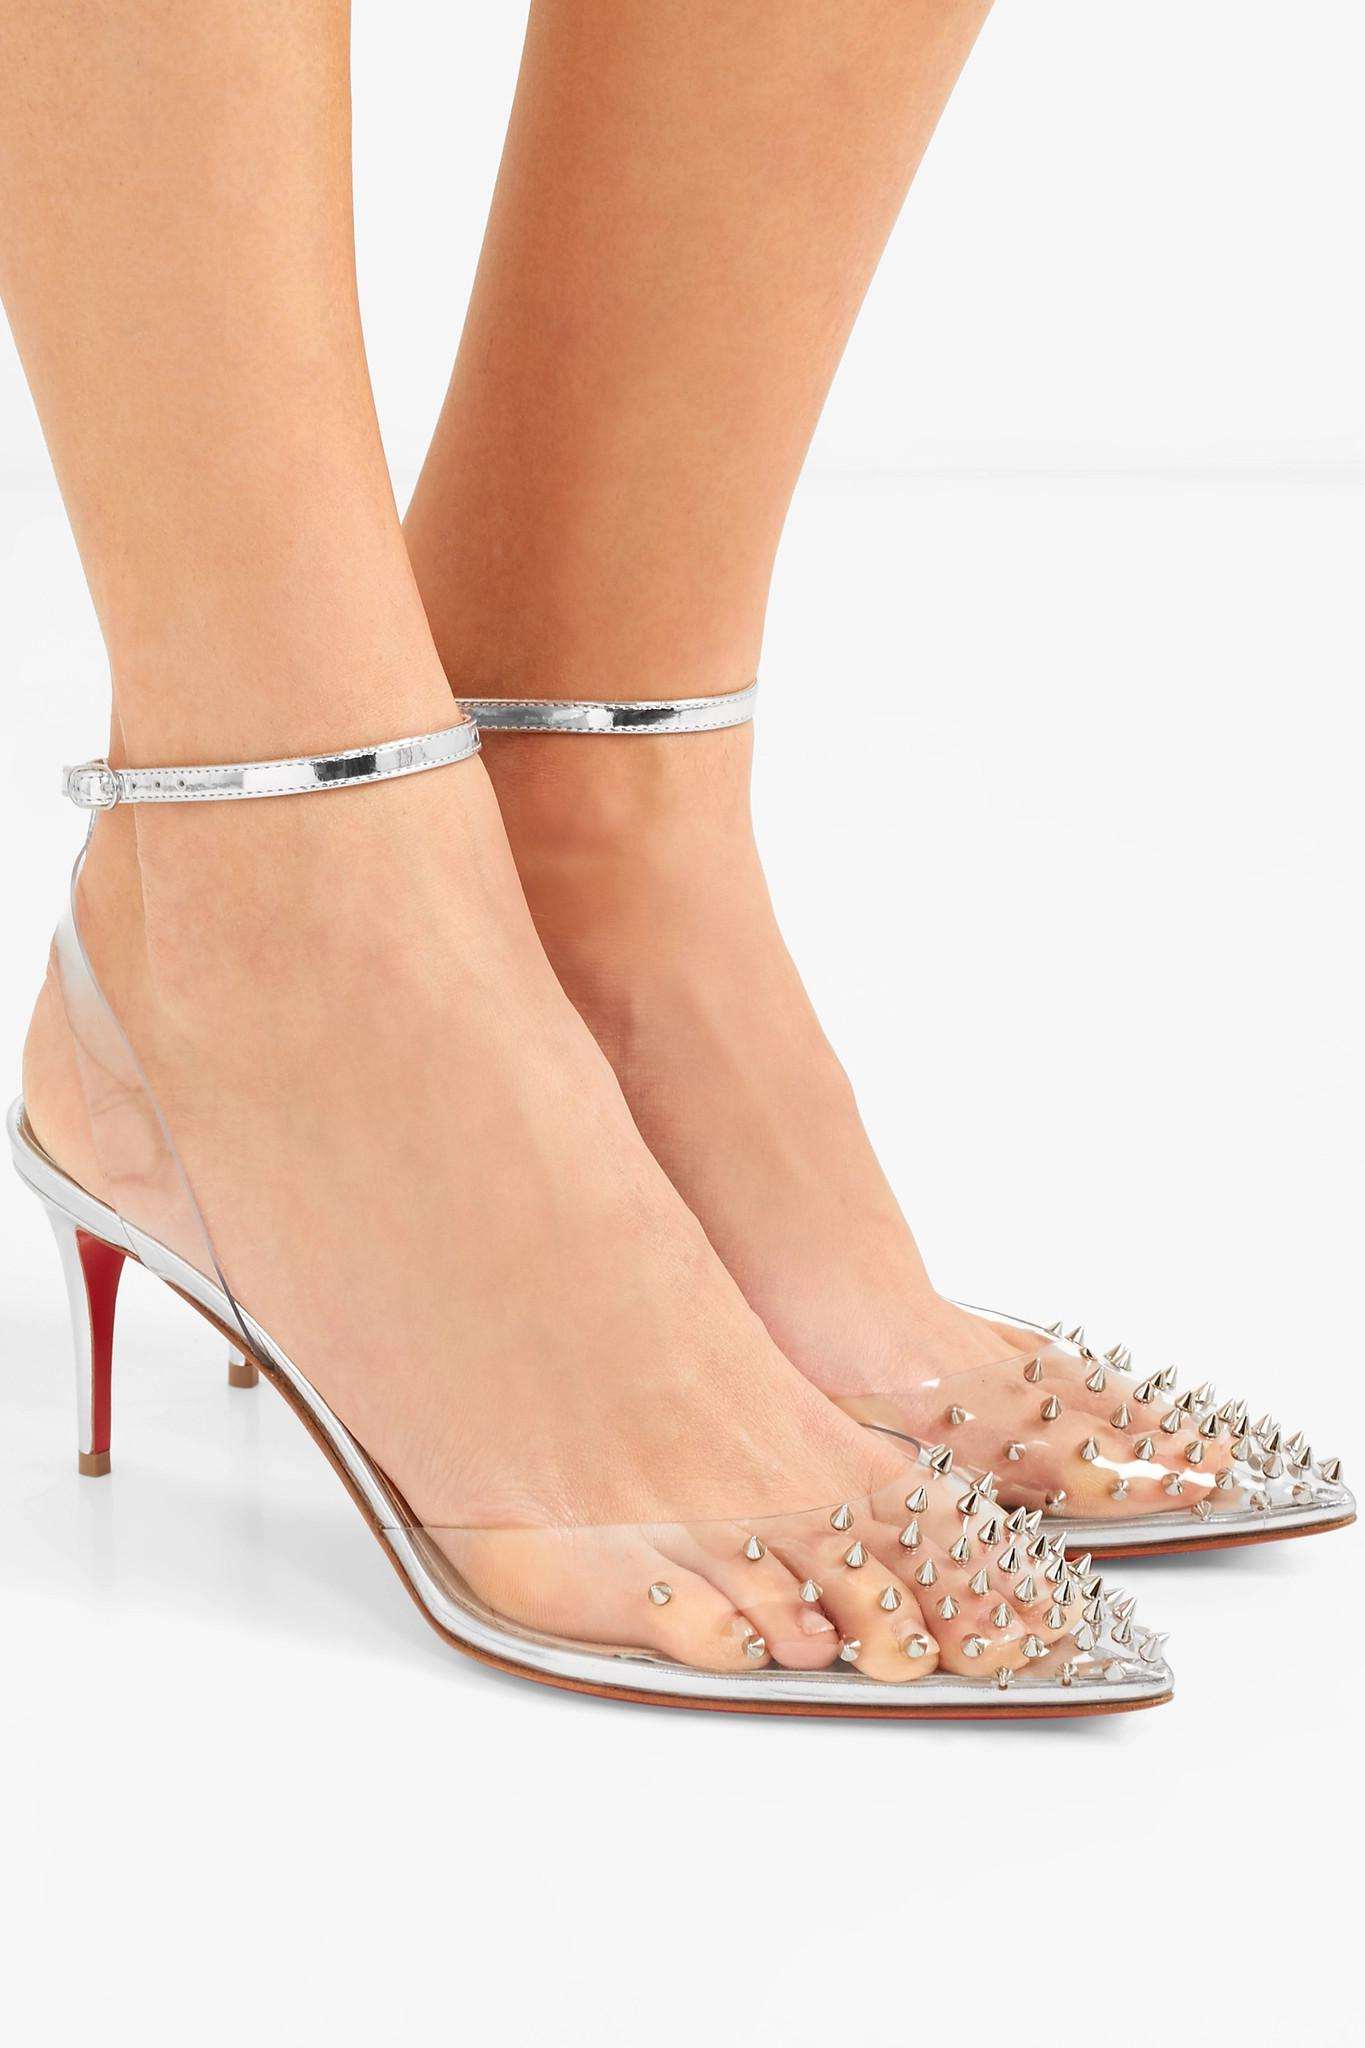 b75e17f7812 Christian Louboutin Metallic Spikoo 70 Spiked Pvc And Mirrored-leather Pumps